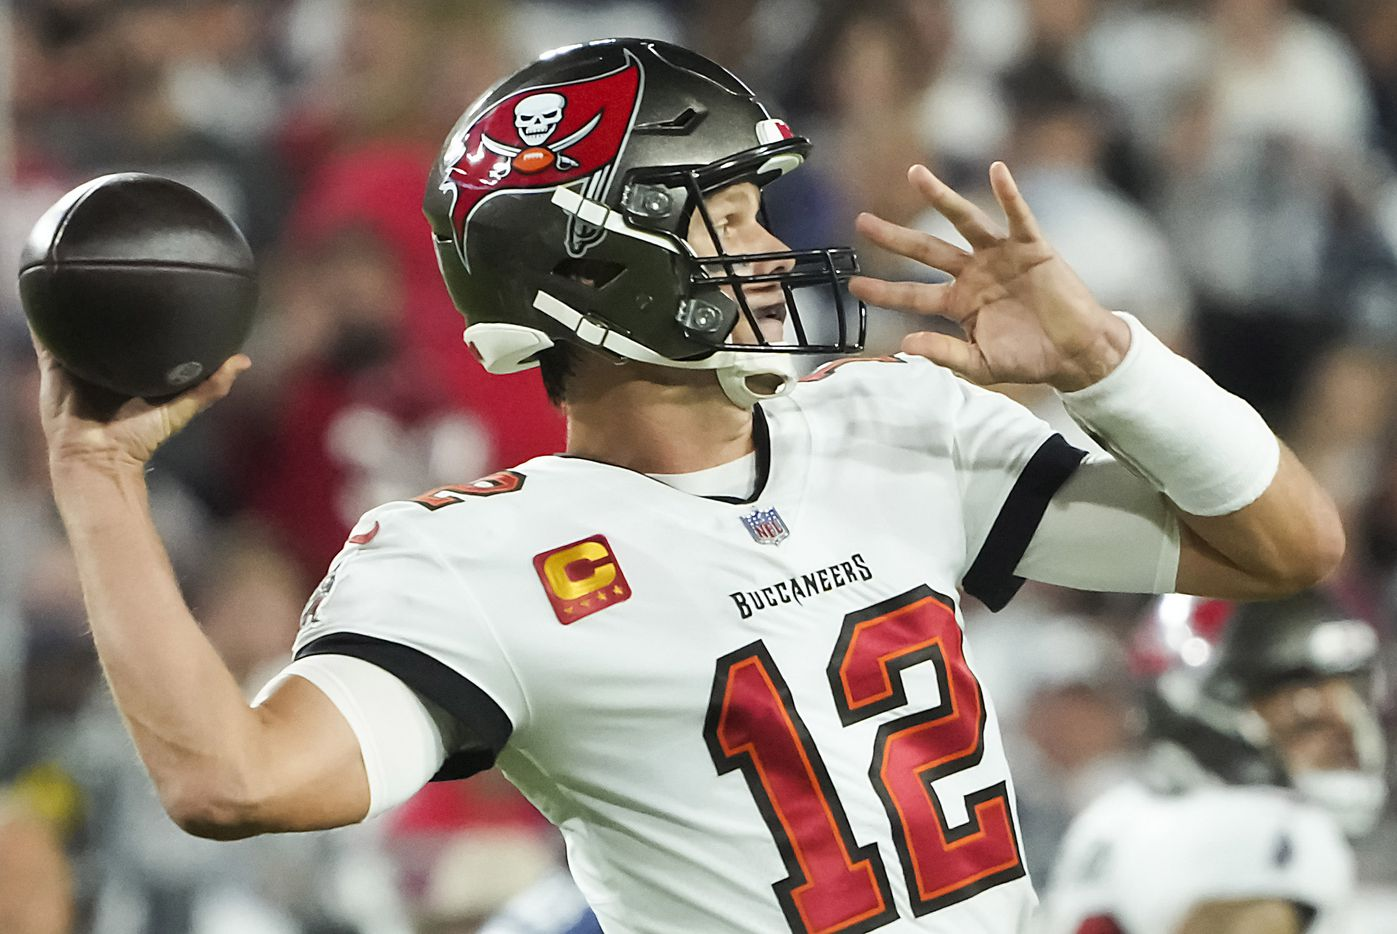 Tampa Bay Buccaneers quarterback Tom Brady (12) throws a pass during the first half of an NFL football game against the Dallas Cowboys at Raymond James Stadium on Thursday, Sept. 9, 2021, in Tampa, Fla. (Smiley N. Pool/The Dallas Morning News)